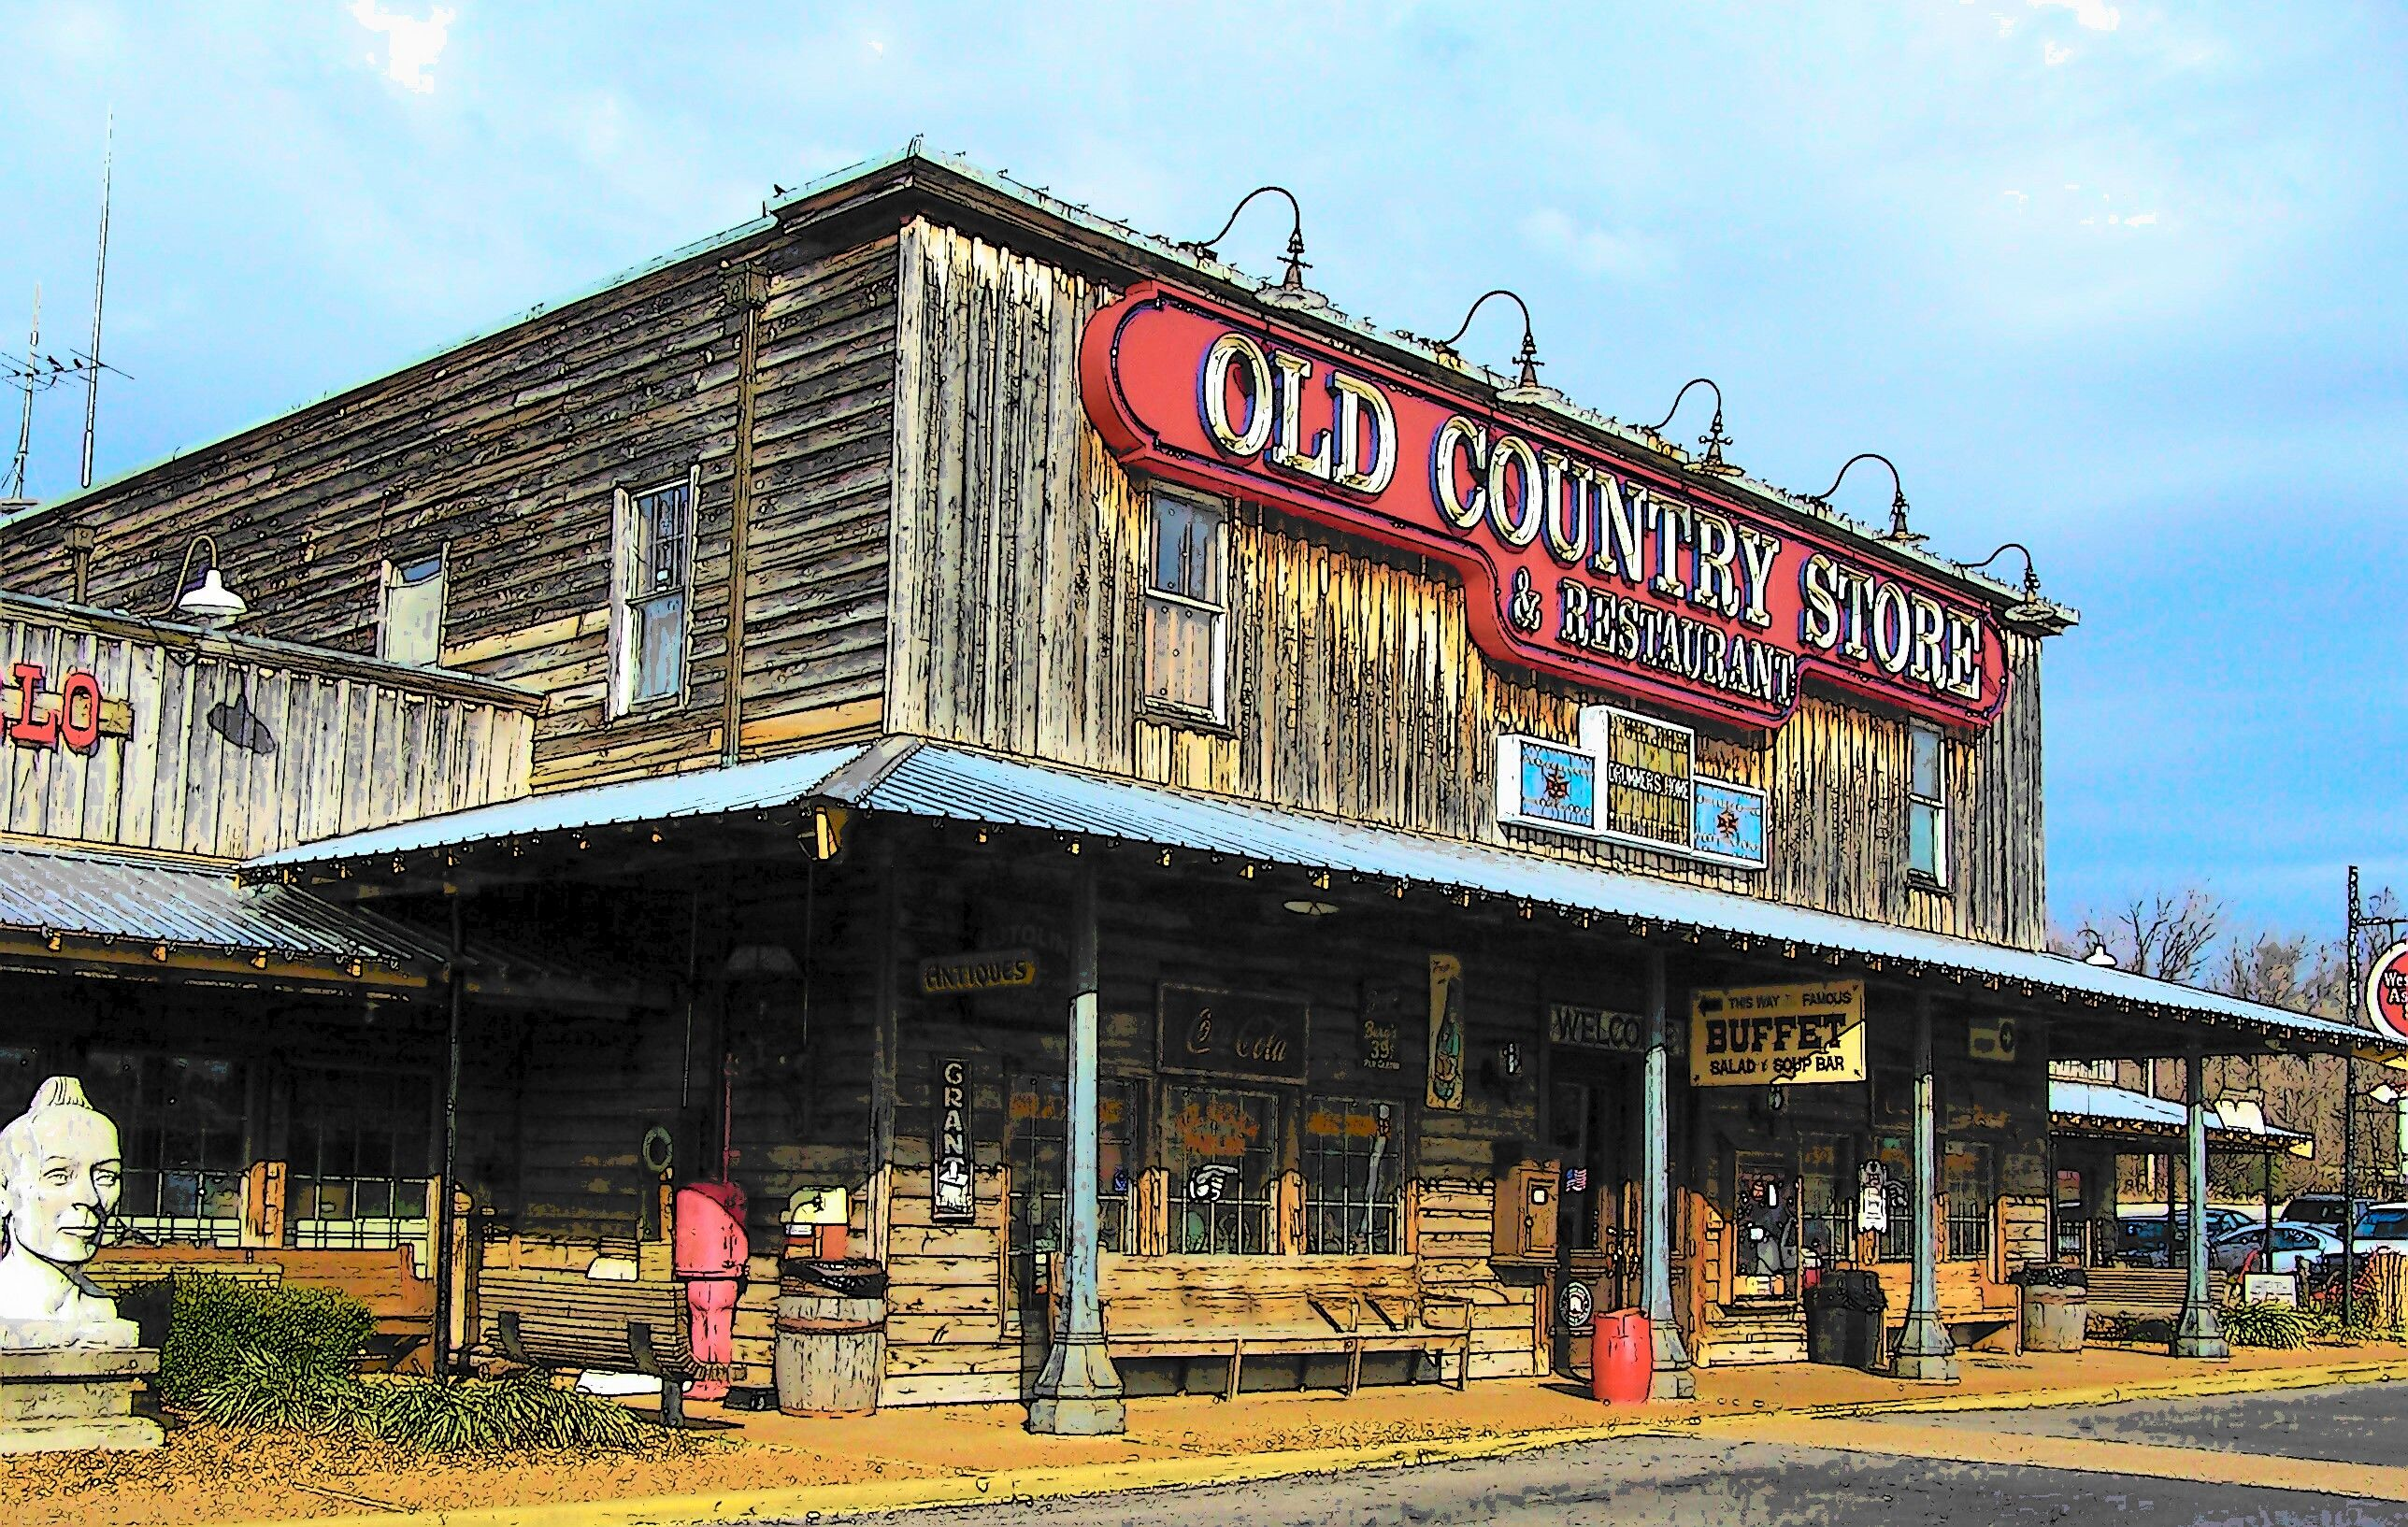 Events in the village old country store celebrates an